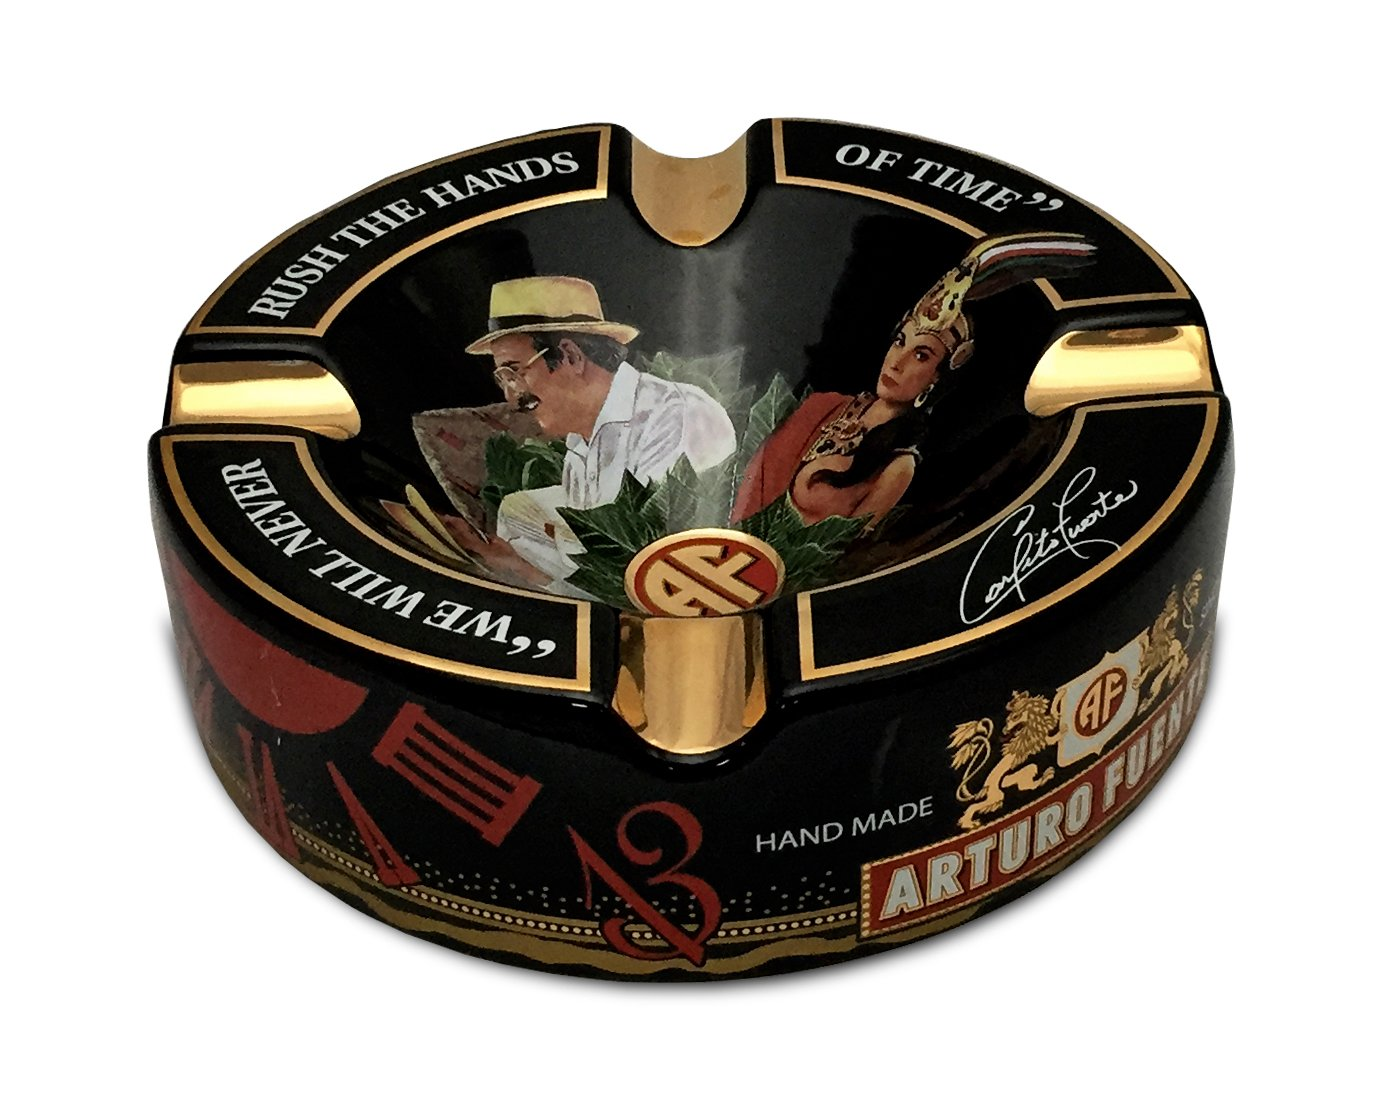 Limited Edition Large 8.75'' Arturo Fuente Porcelain Cigar Ashtray Black by Arturo Fuente